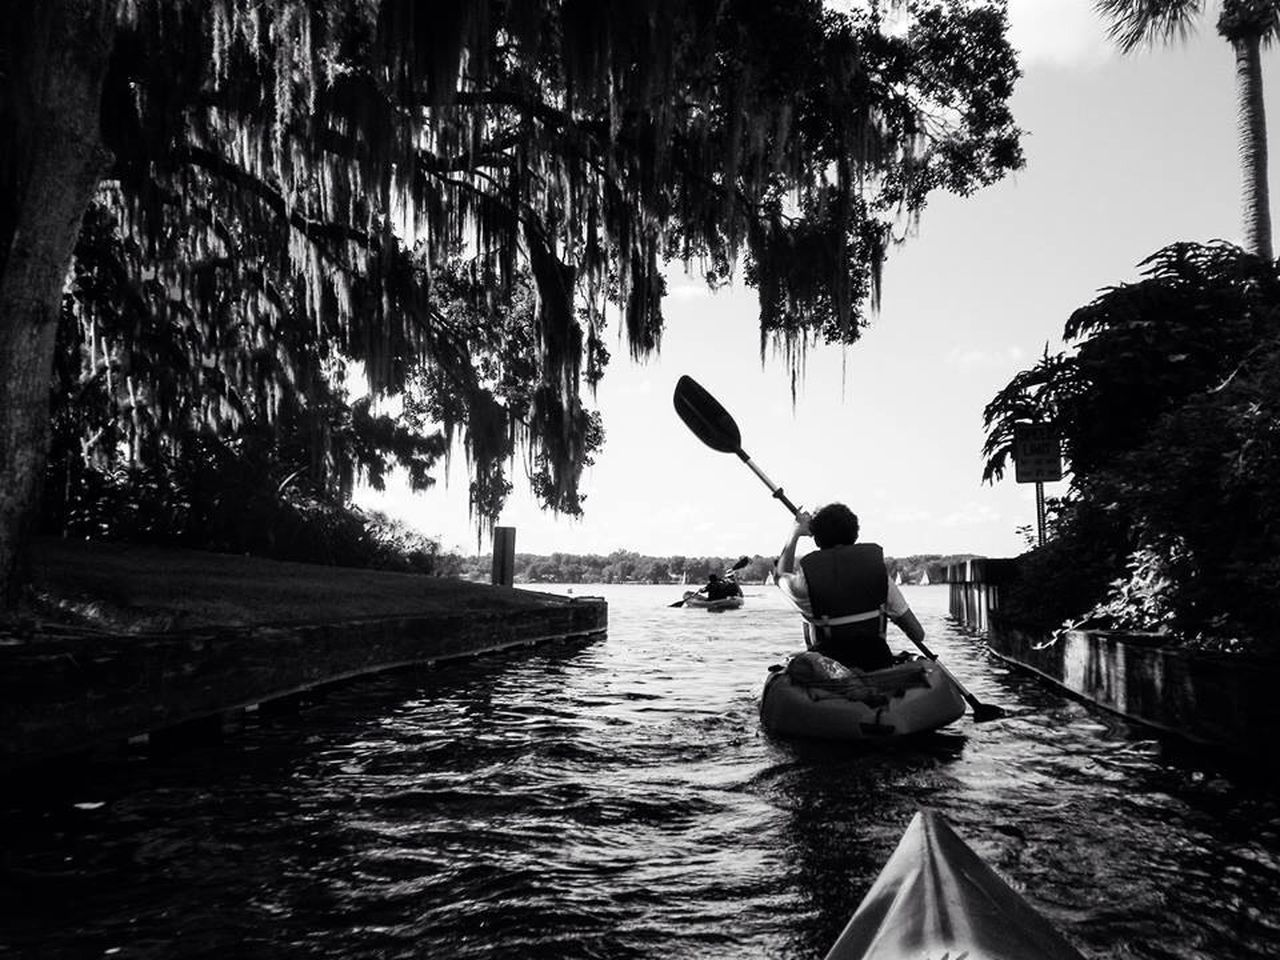 Tourist Kayaking In Canal